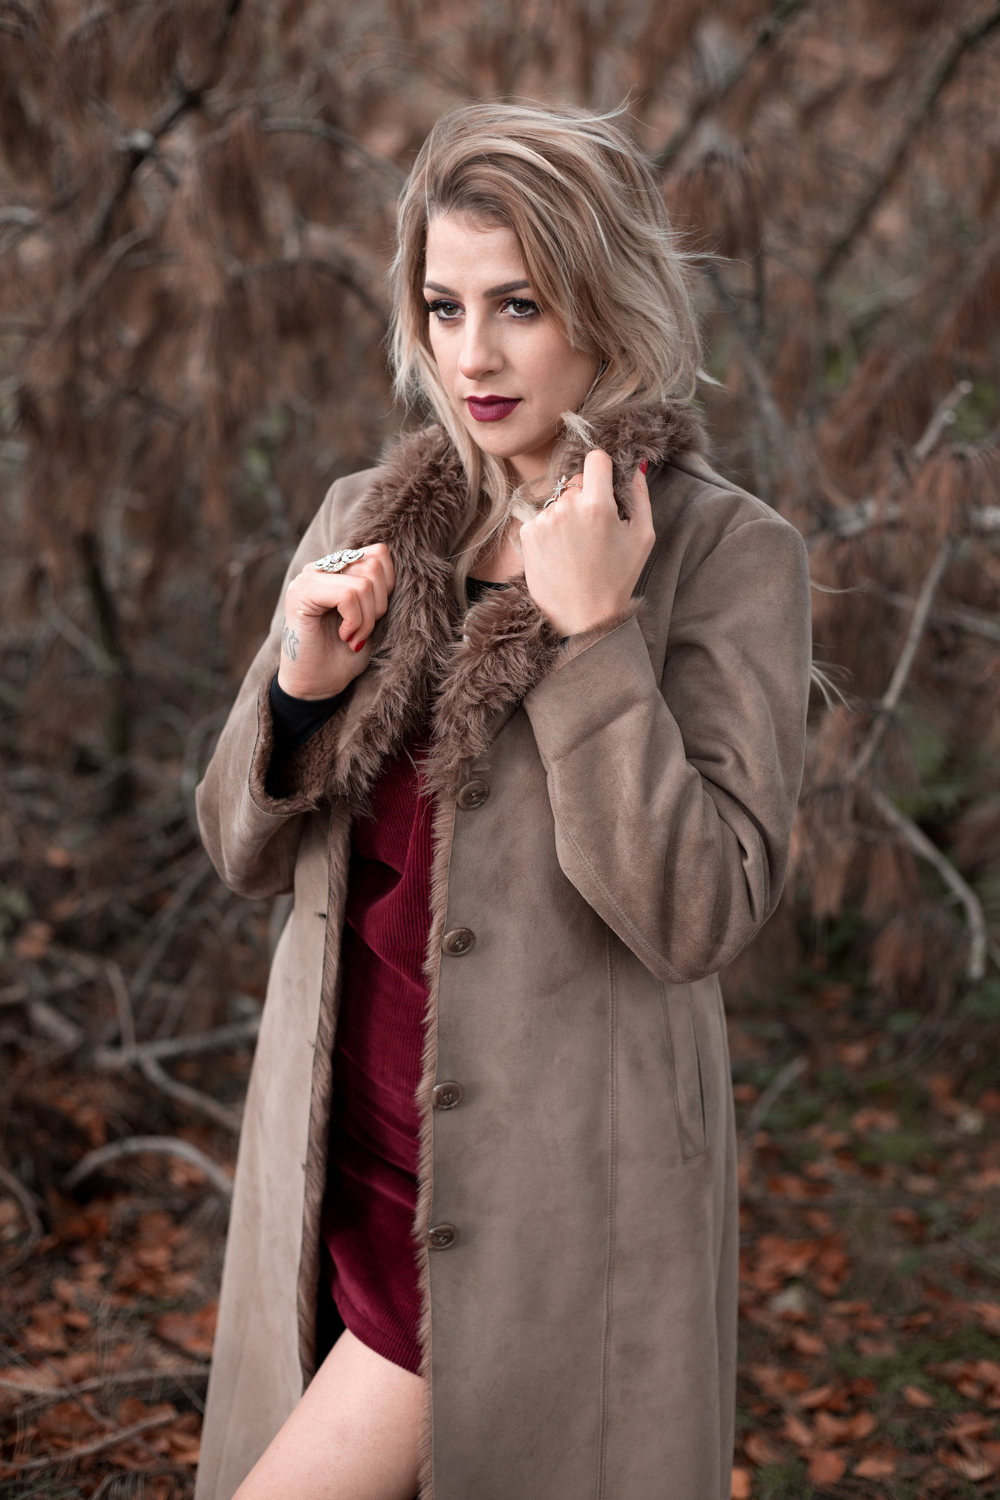 LEA-COOPER-PHOTOGRAPHY-WILLENHALL-WEST-MIDLANDS-WOLVERHAMPTON-PORTRAIT-MEGAN-REECE-COAT-WINTER.jpg